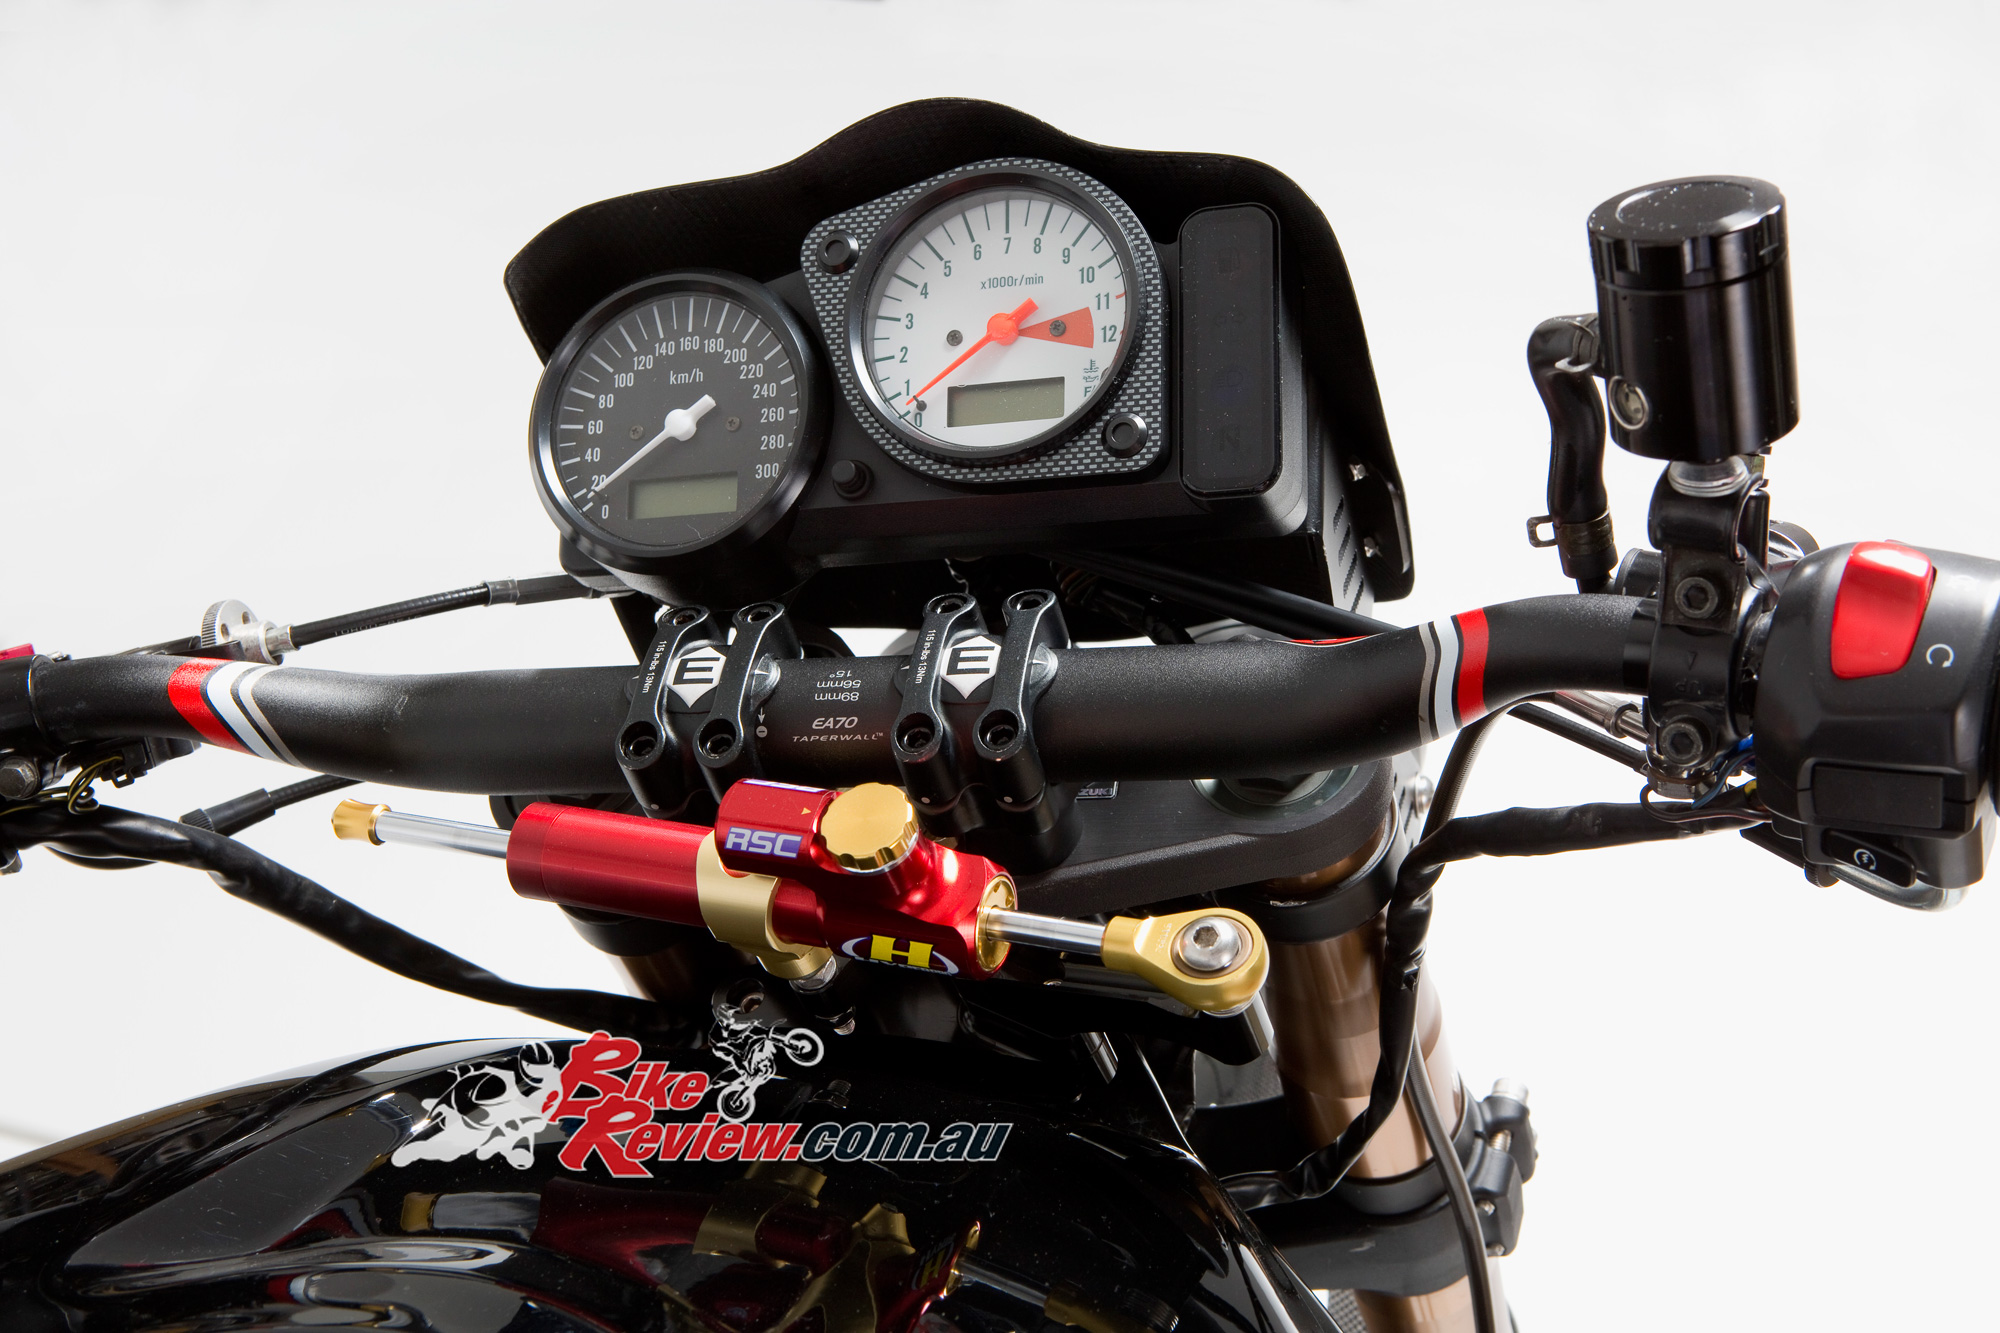 Custom Suzuki Tl1000s Carbon Fighter Bike Review